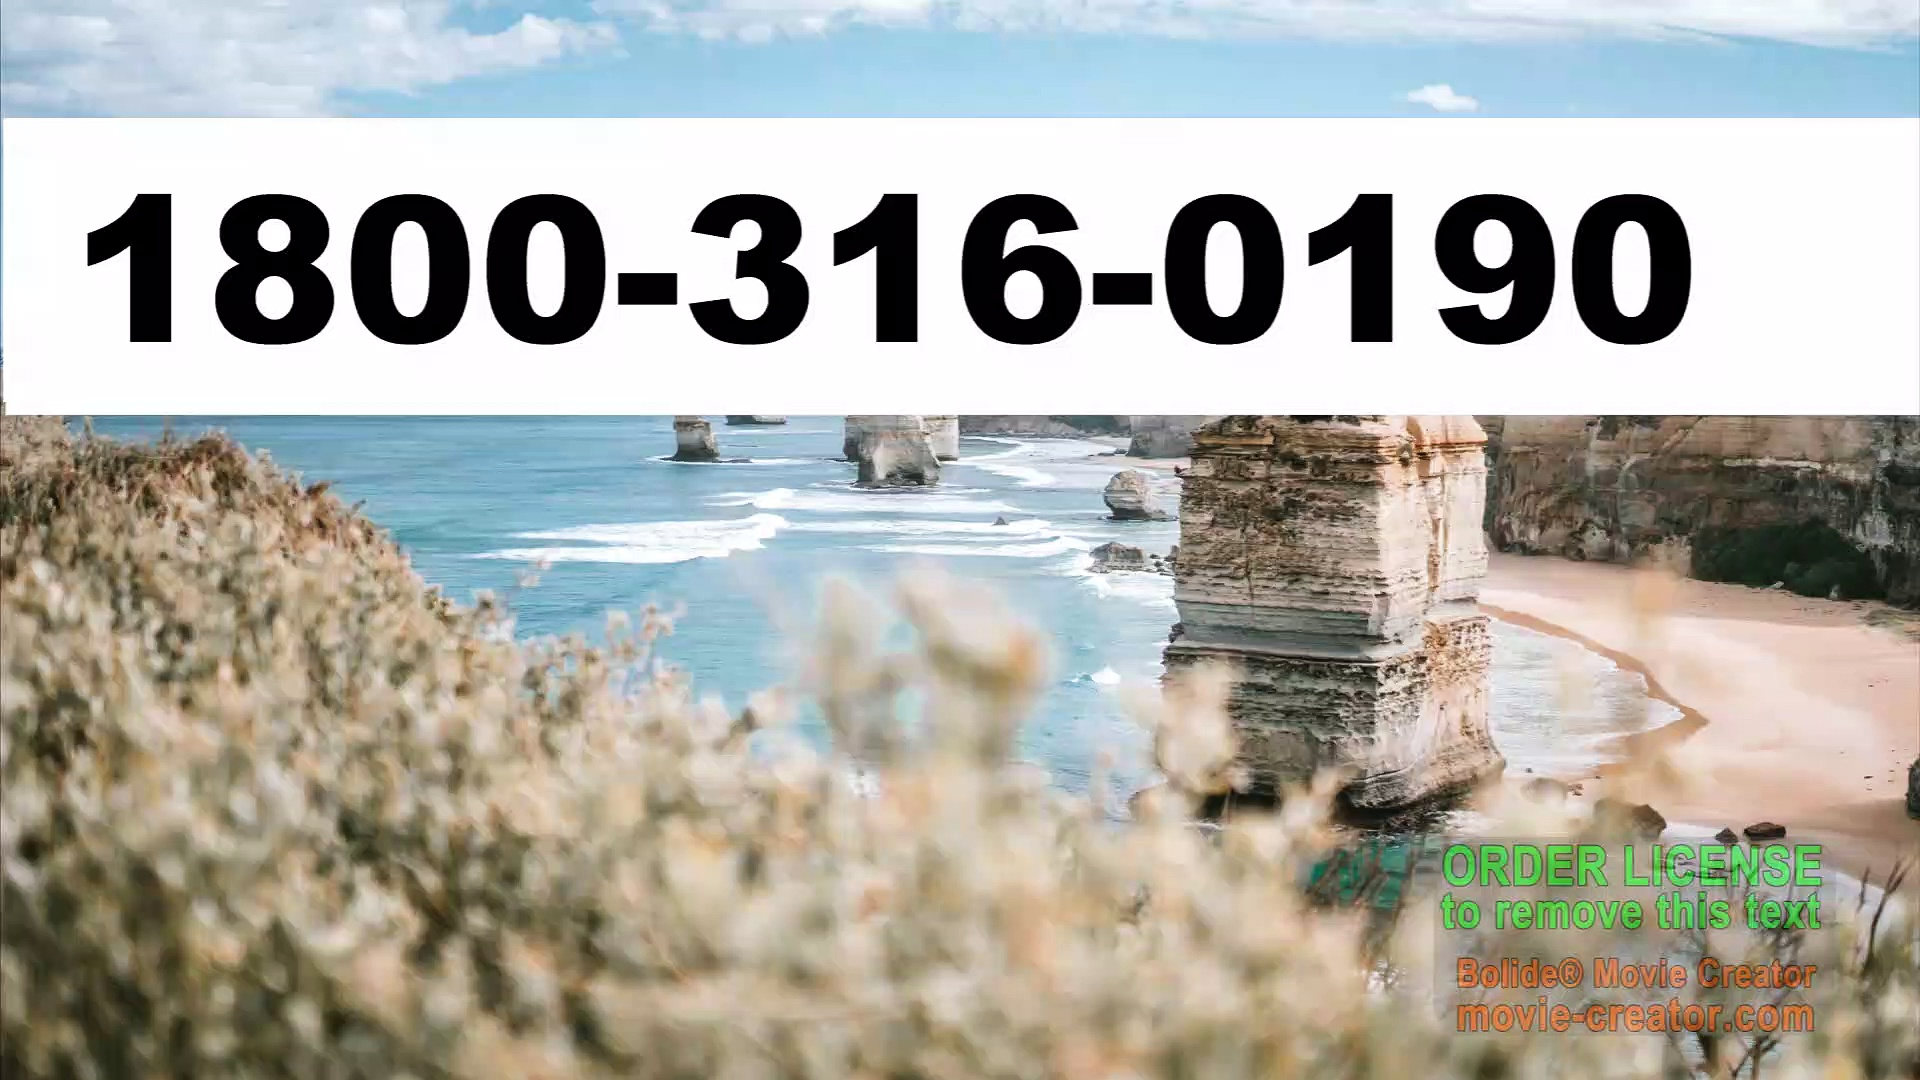 1-800-316-0190-Yahoo technical support telephone number USA-Canada